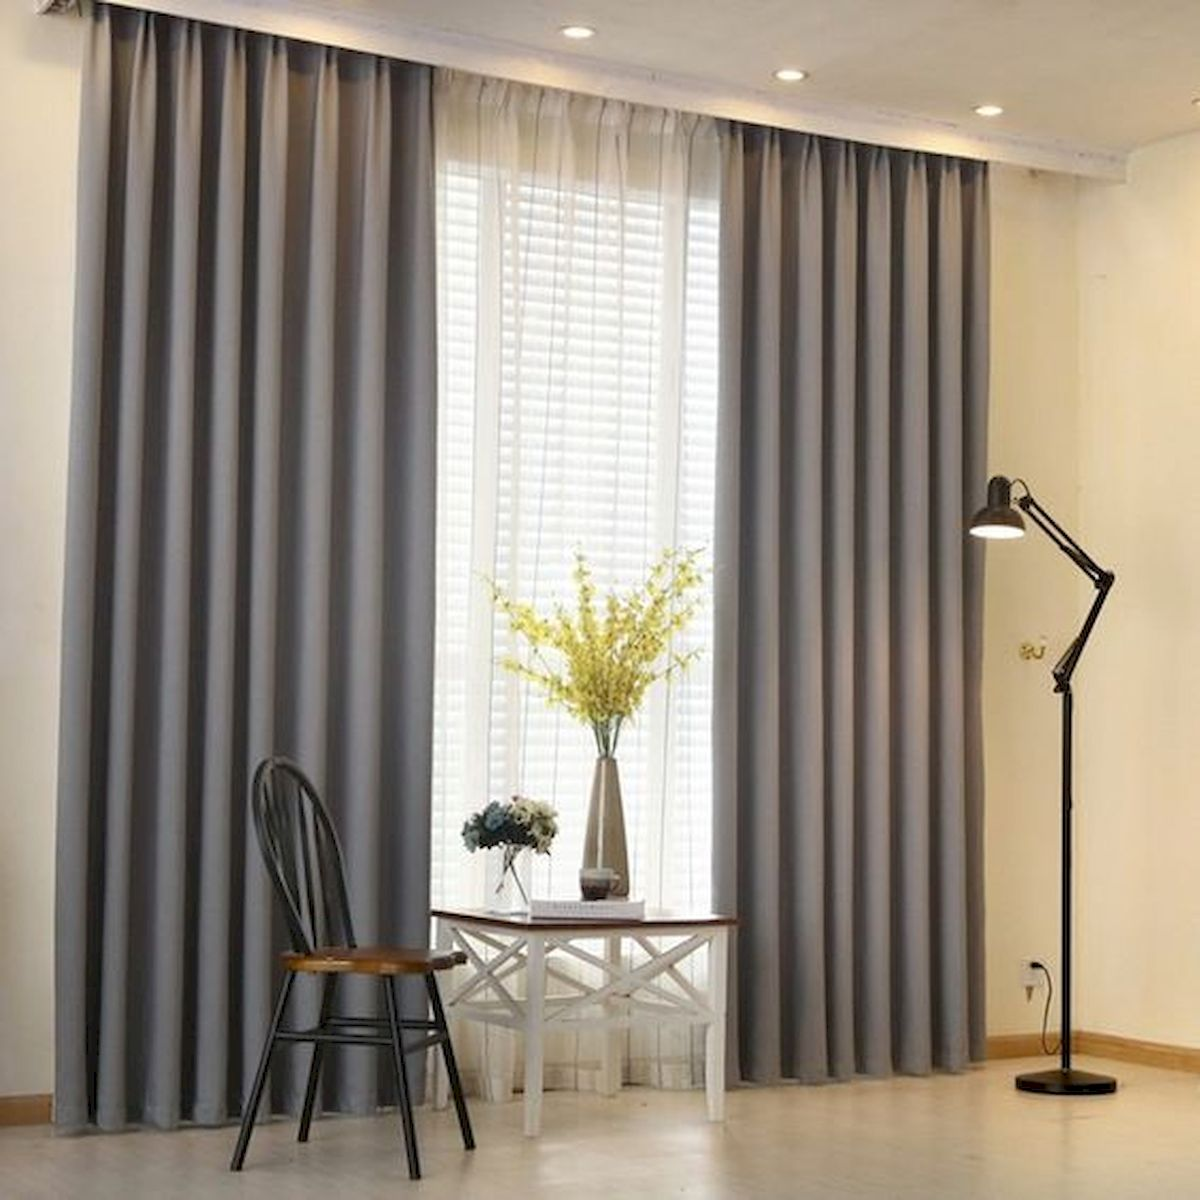 65 Adorable Window Curtains Design Ideas And Decor (8)